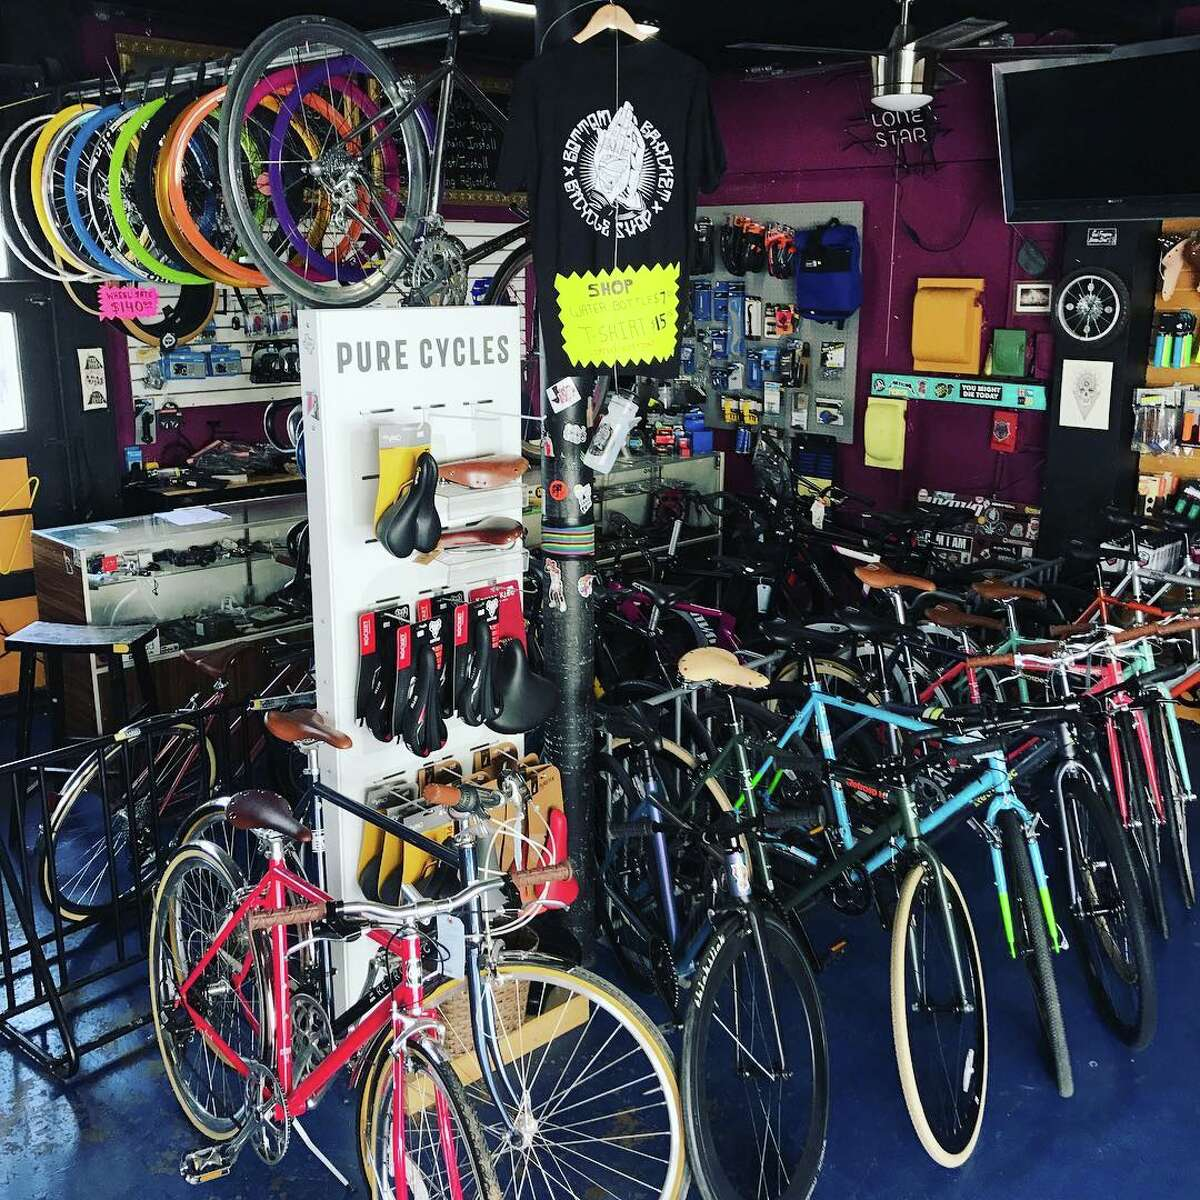 Bottom Bracket Bicycle Shop is located at 1603 North Colorado Street in the Five Points neighborhood. It was previously located in Southtown.